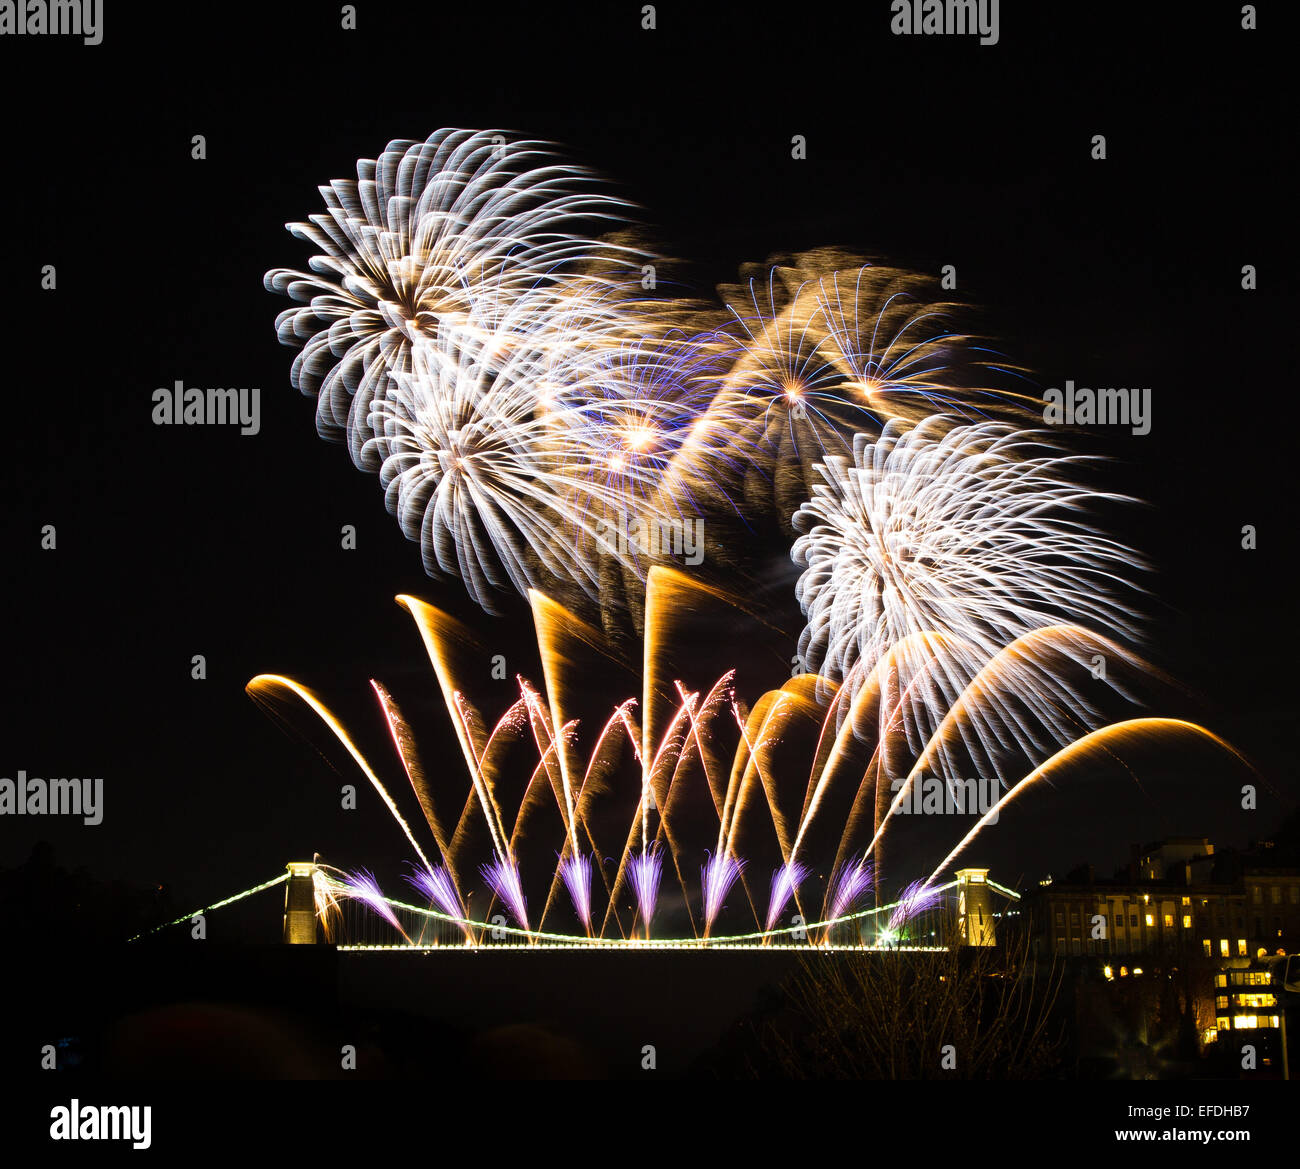 Firework display on the Clifton Suspension Bridge in Bristol to celebrate the 150th anniversary of opening of Brunel's - Stock Image